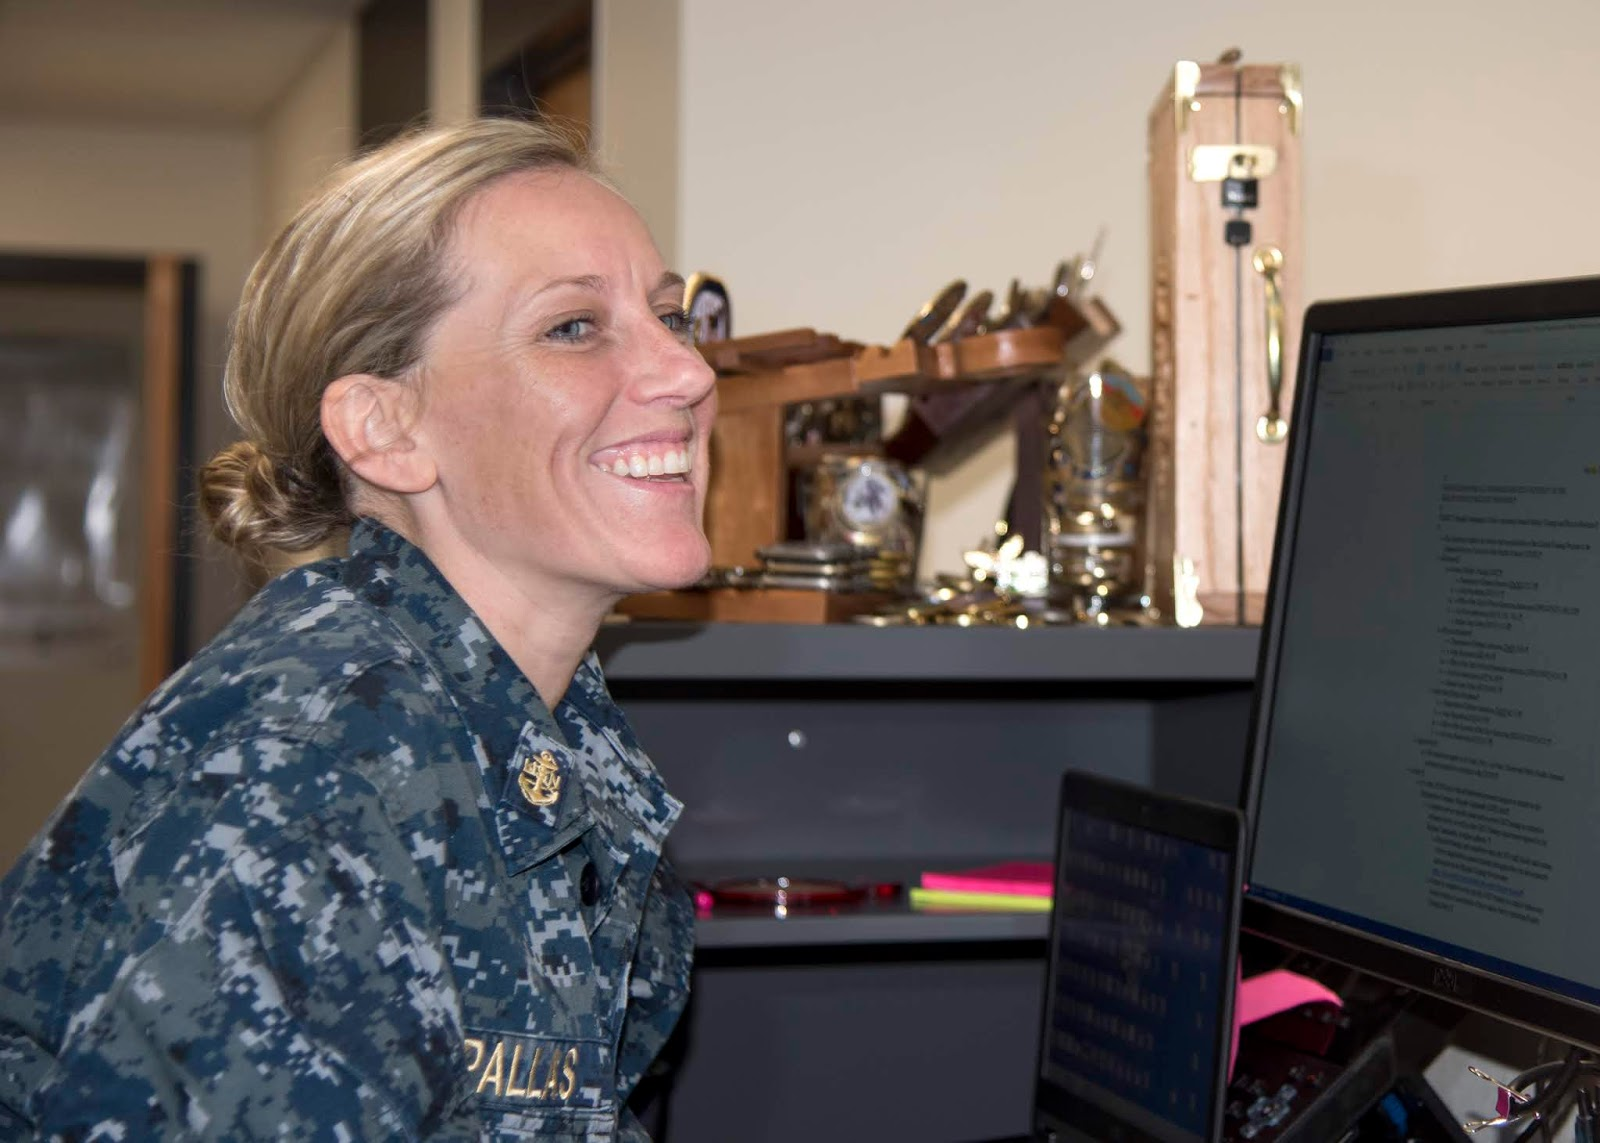 A female in a U.S. Navy uniform is at her desk working. She's laughing and looking toward her computer.